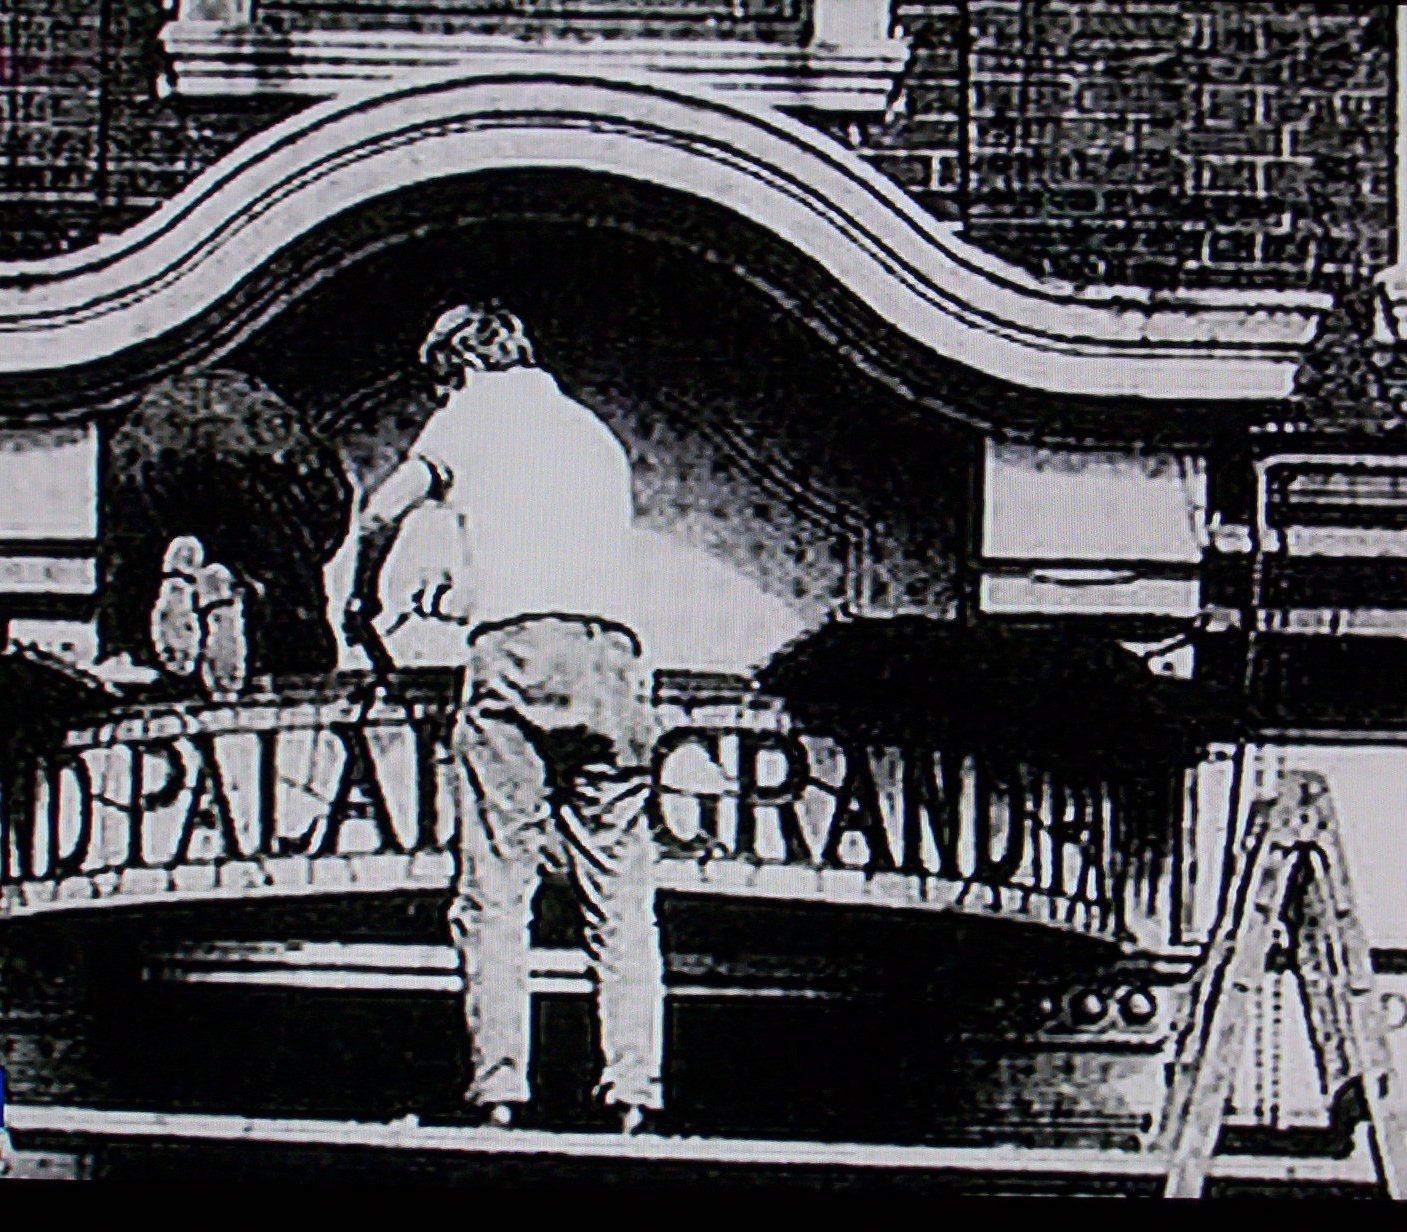 Grand Palais Yiddish theatre in Commercial Rd